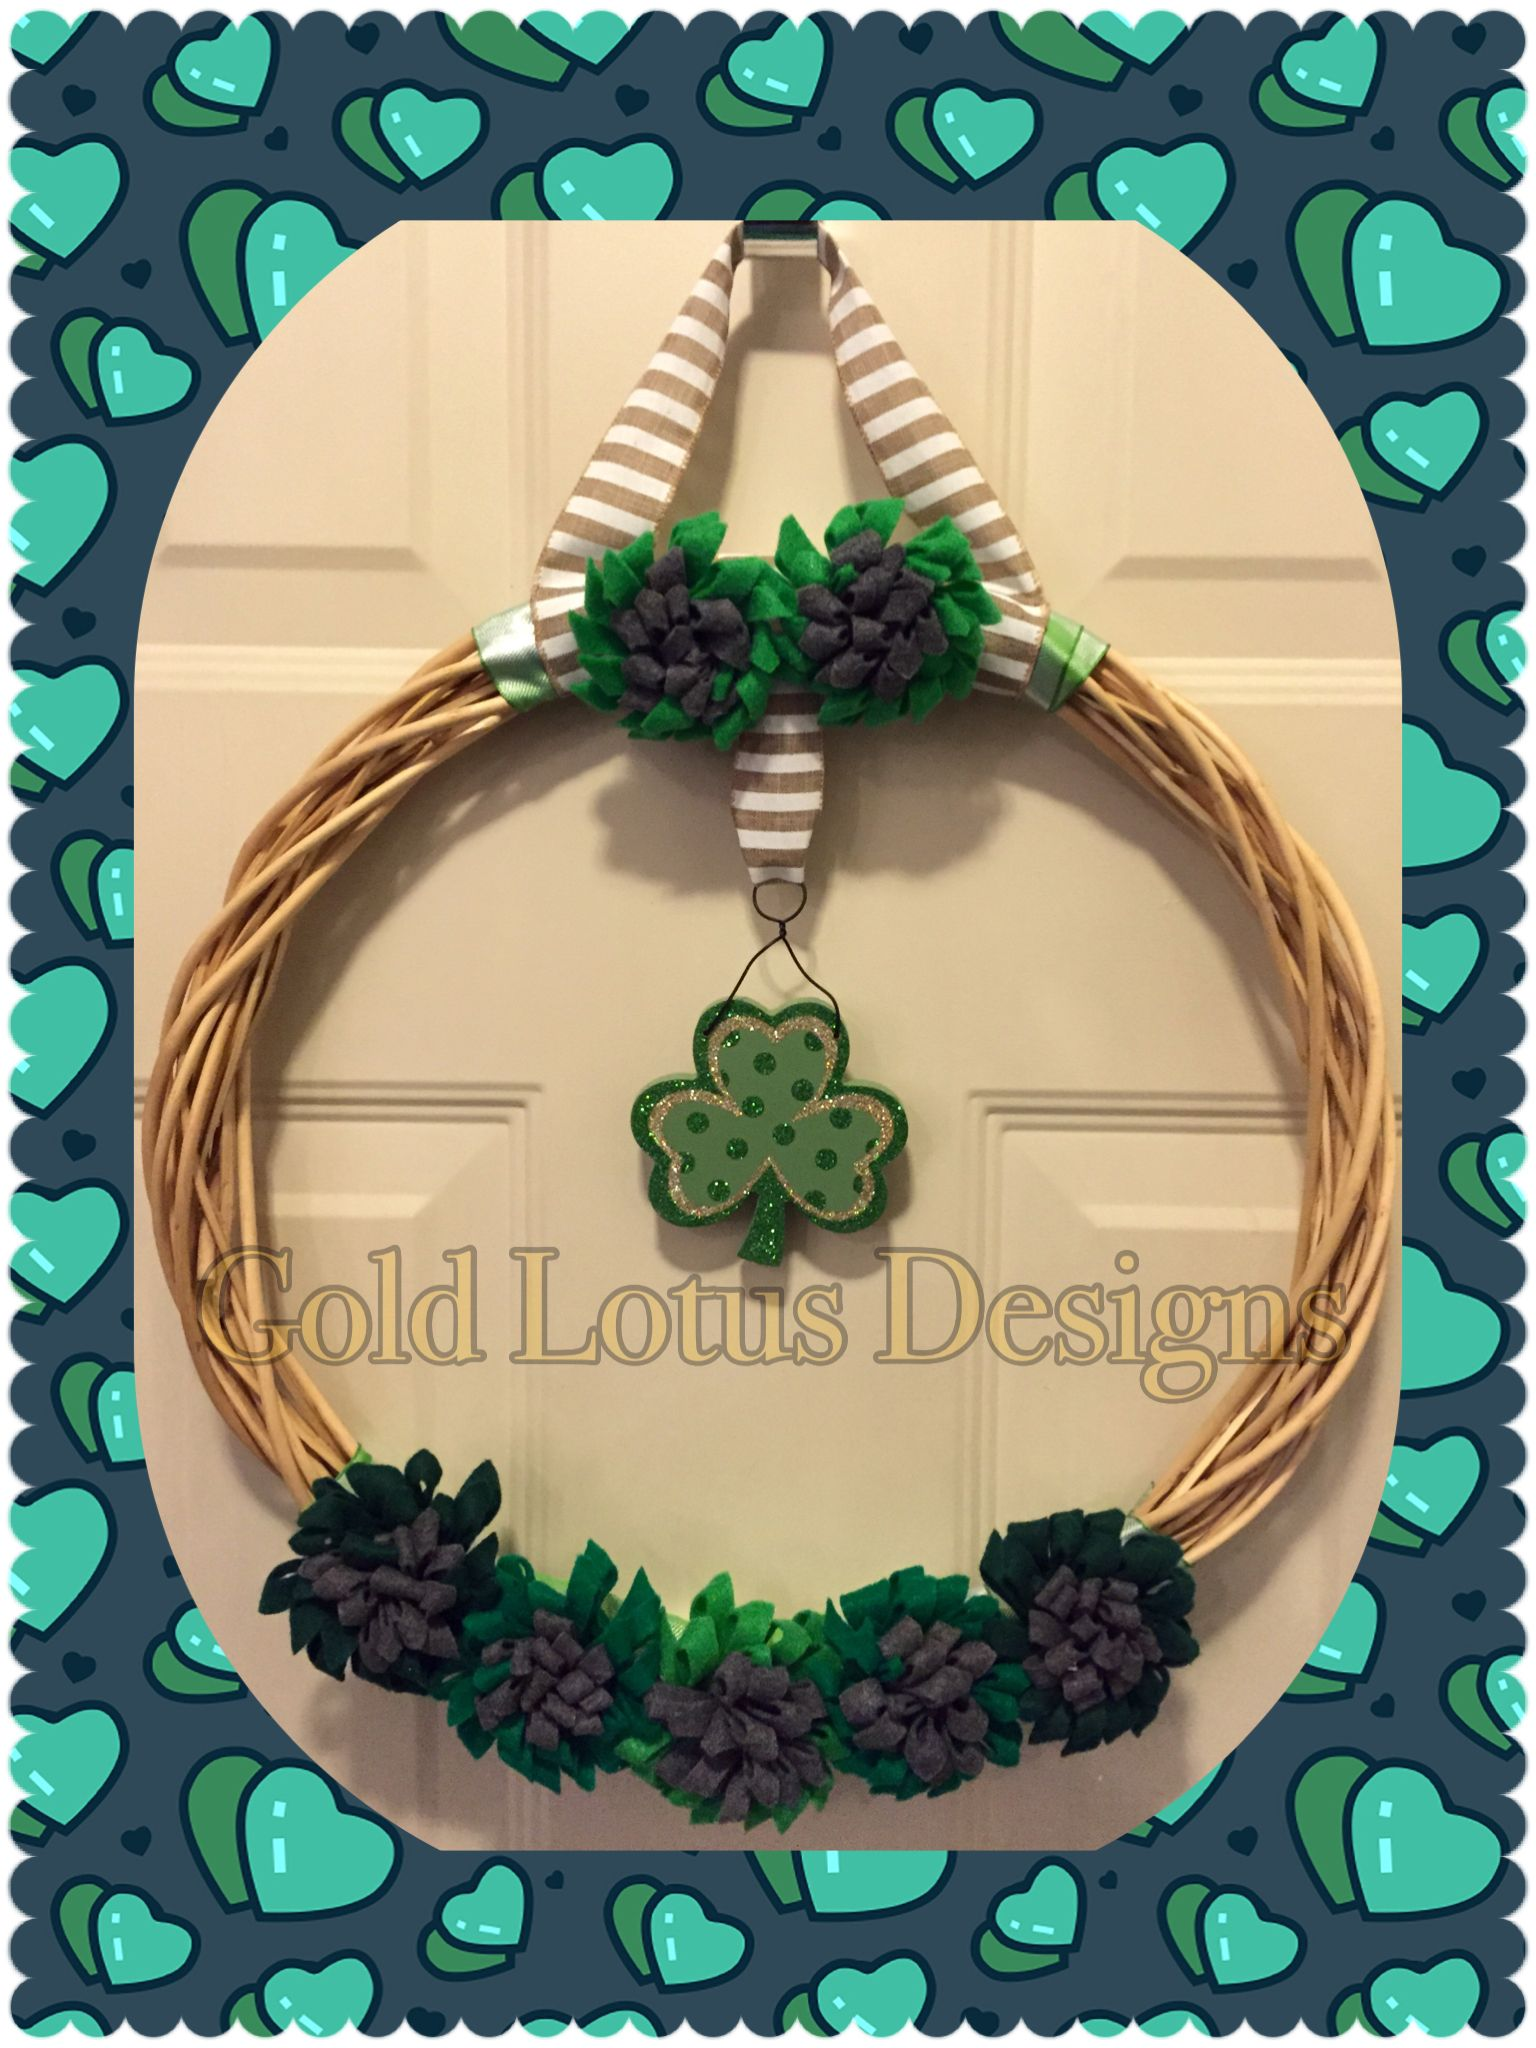 "St. Patrick's Day Willow/Rattan Wreath with Handmade Felt Flowers & Wood 4-Leaf Clover Decoration, 18"" - Gold Lotus Designs ** Custom Handmade Crafts by Kim Lynn ** www.facebook.com/GoldLotusDesigns"